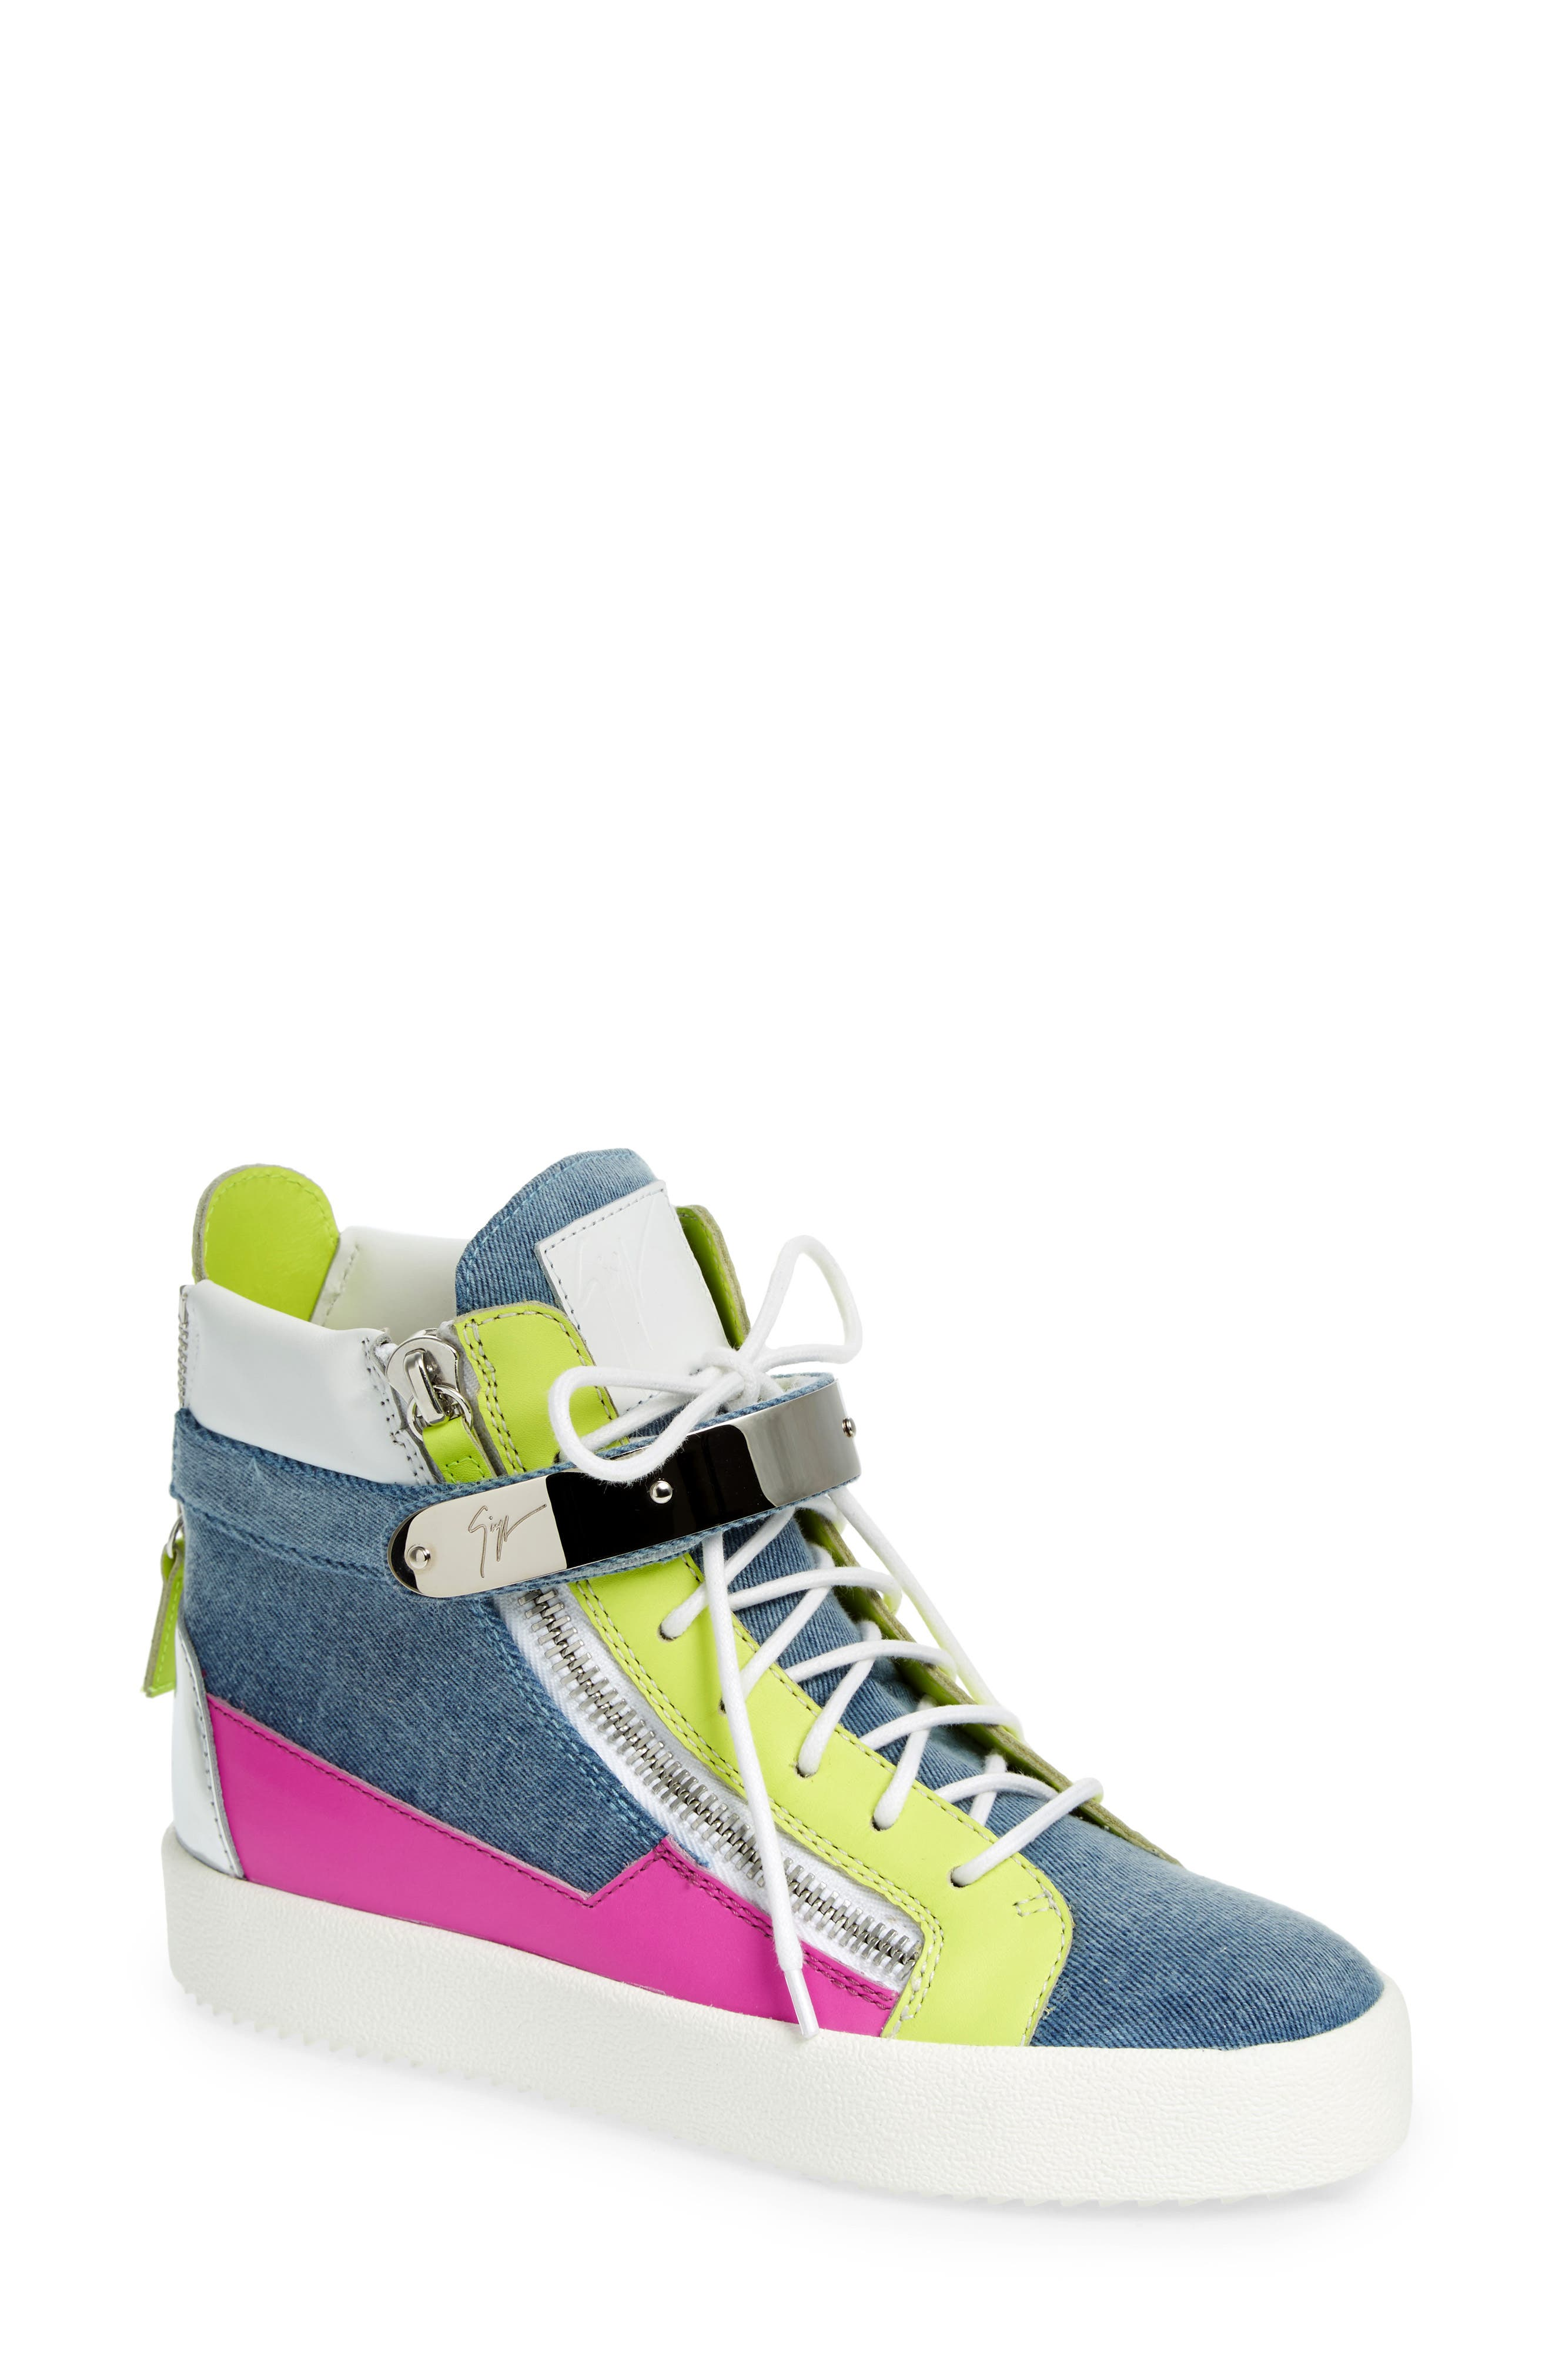 Main Image - Giuseppe Zanotti May London High Top Sneaker (Women)